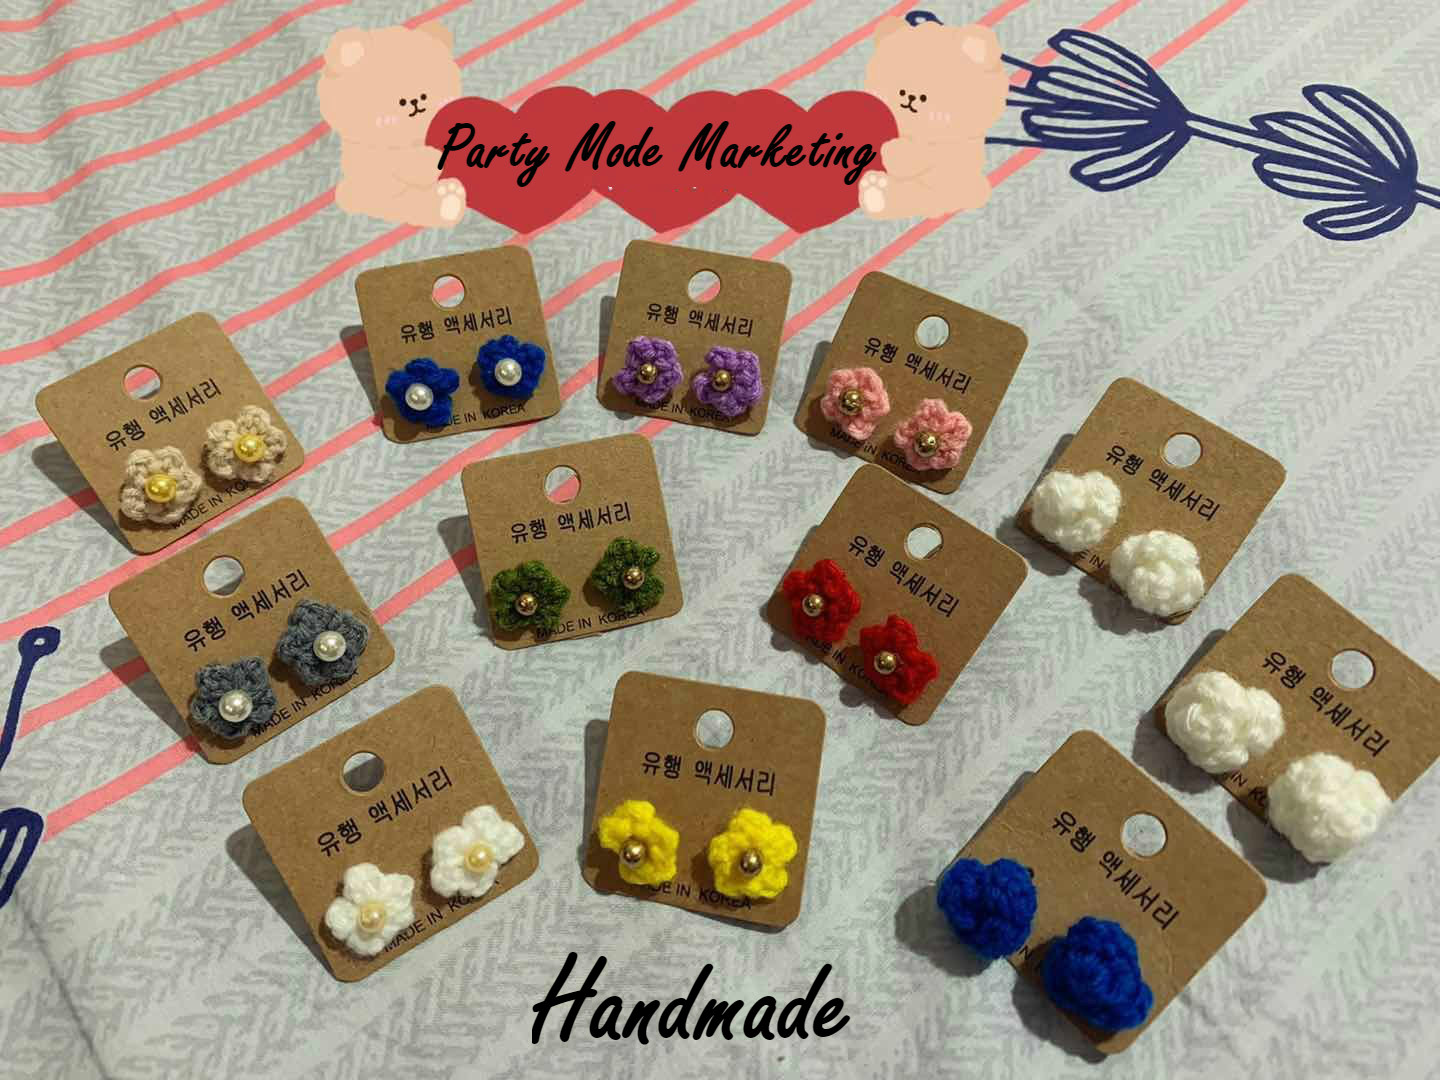 Handmade Crochet Yarn Flower Earrings Girl Fashion Accessories